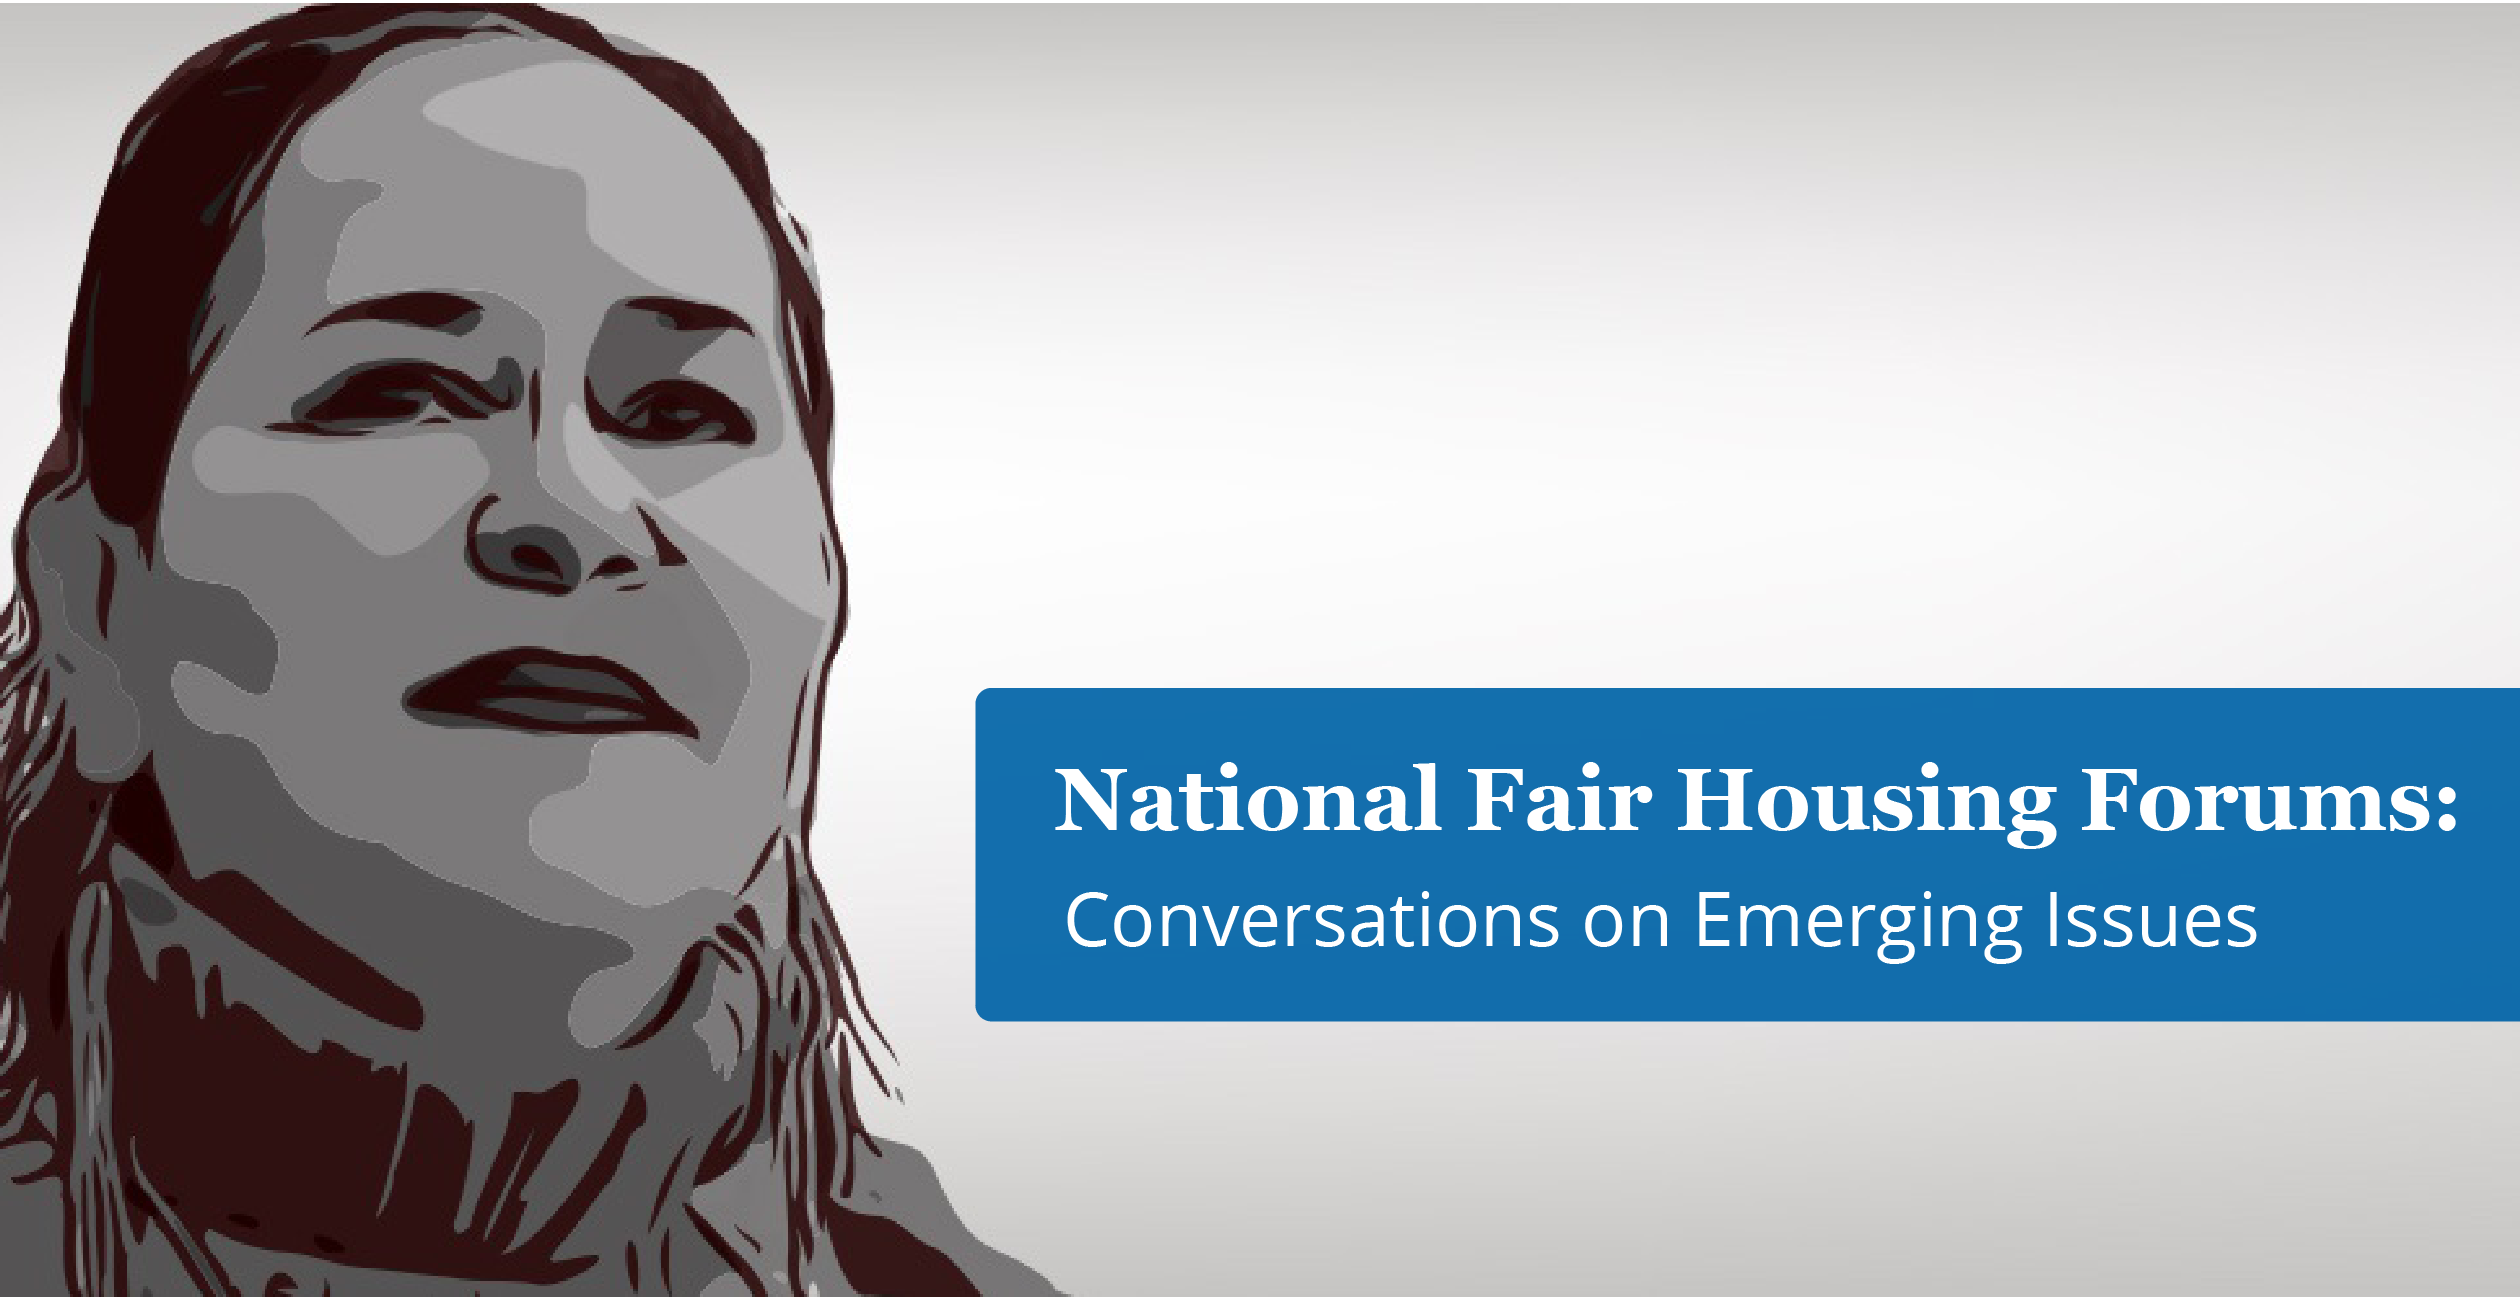 NFHTA Fair Housing Forums: Conversations on Emerging Issues